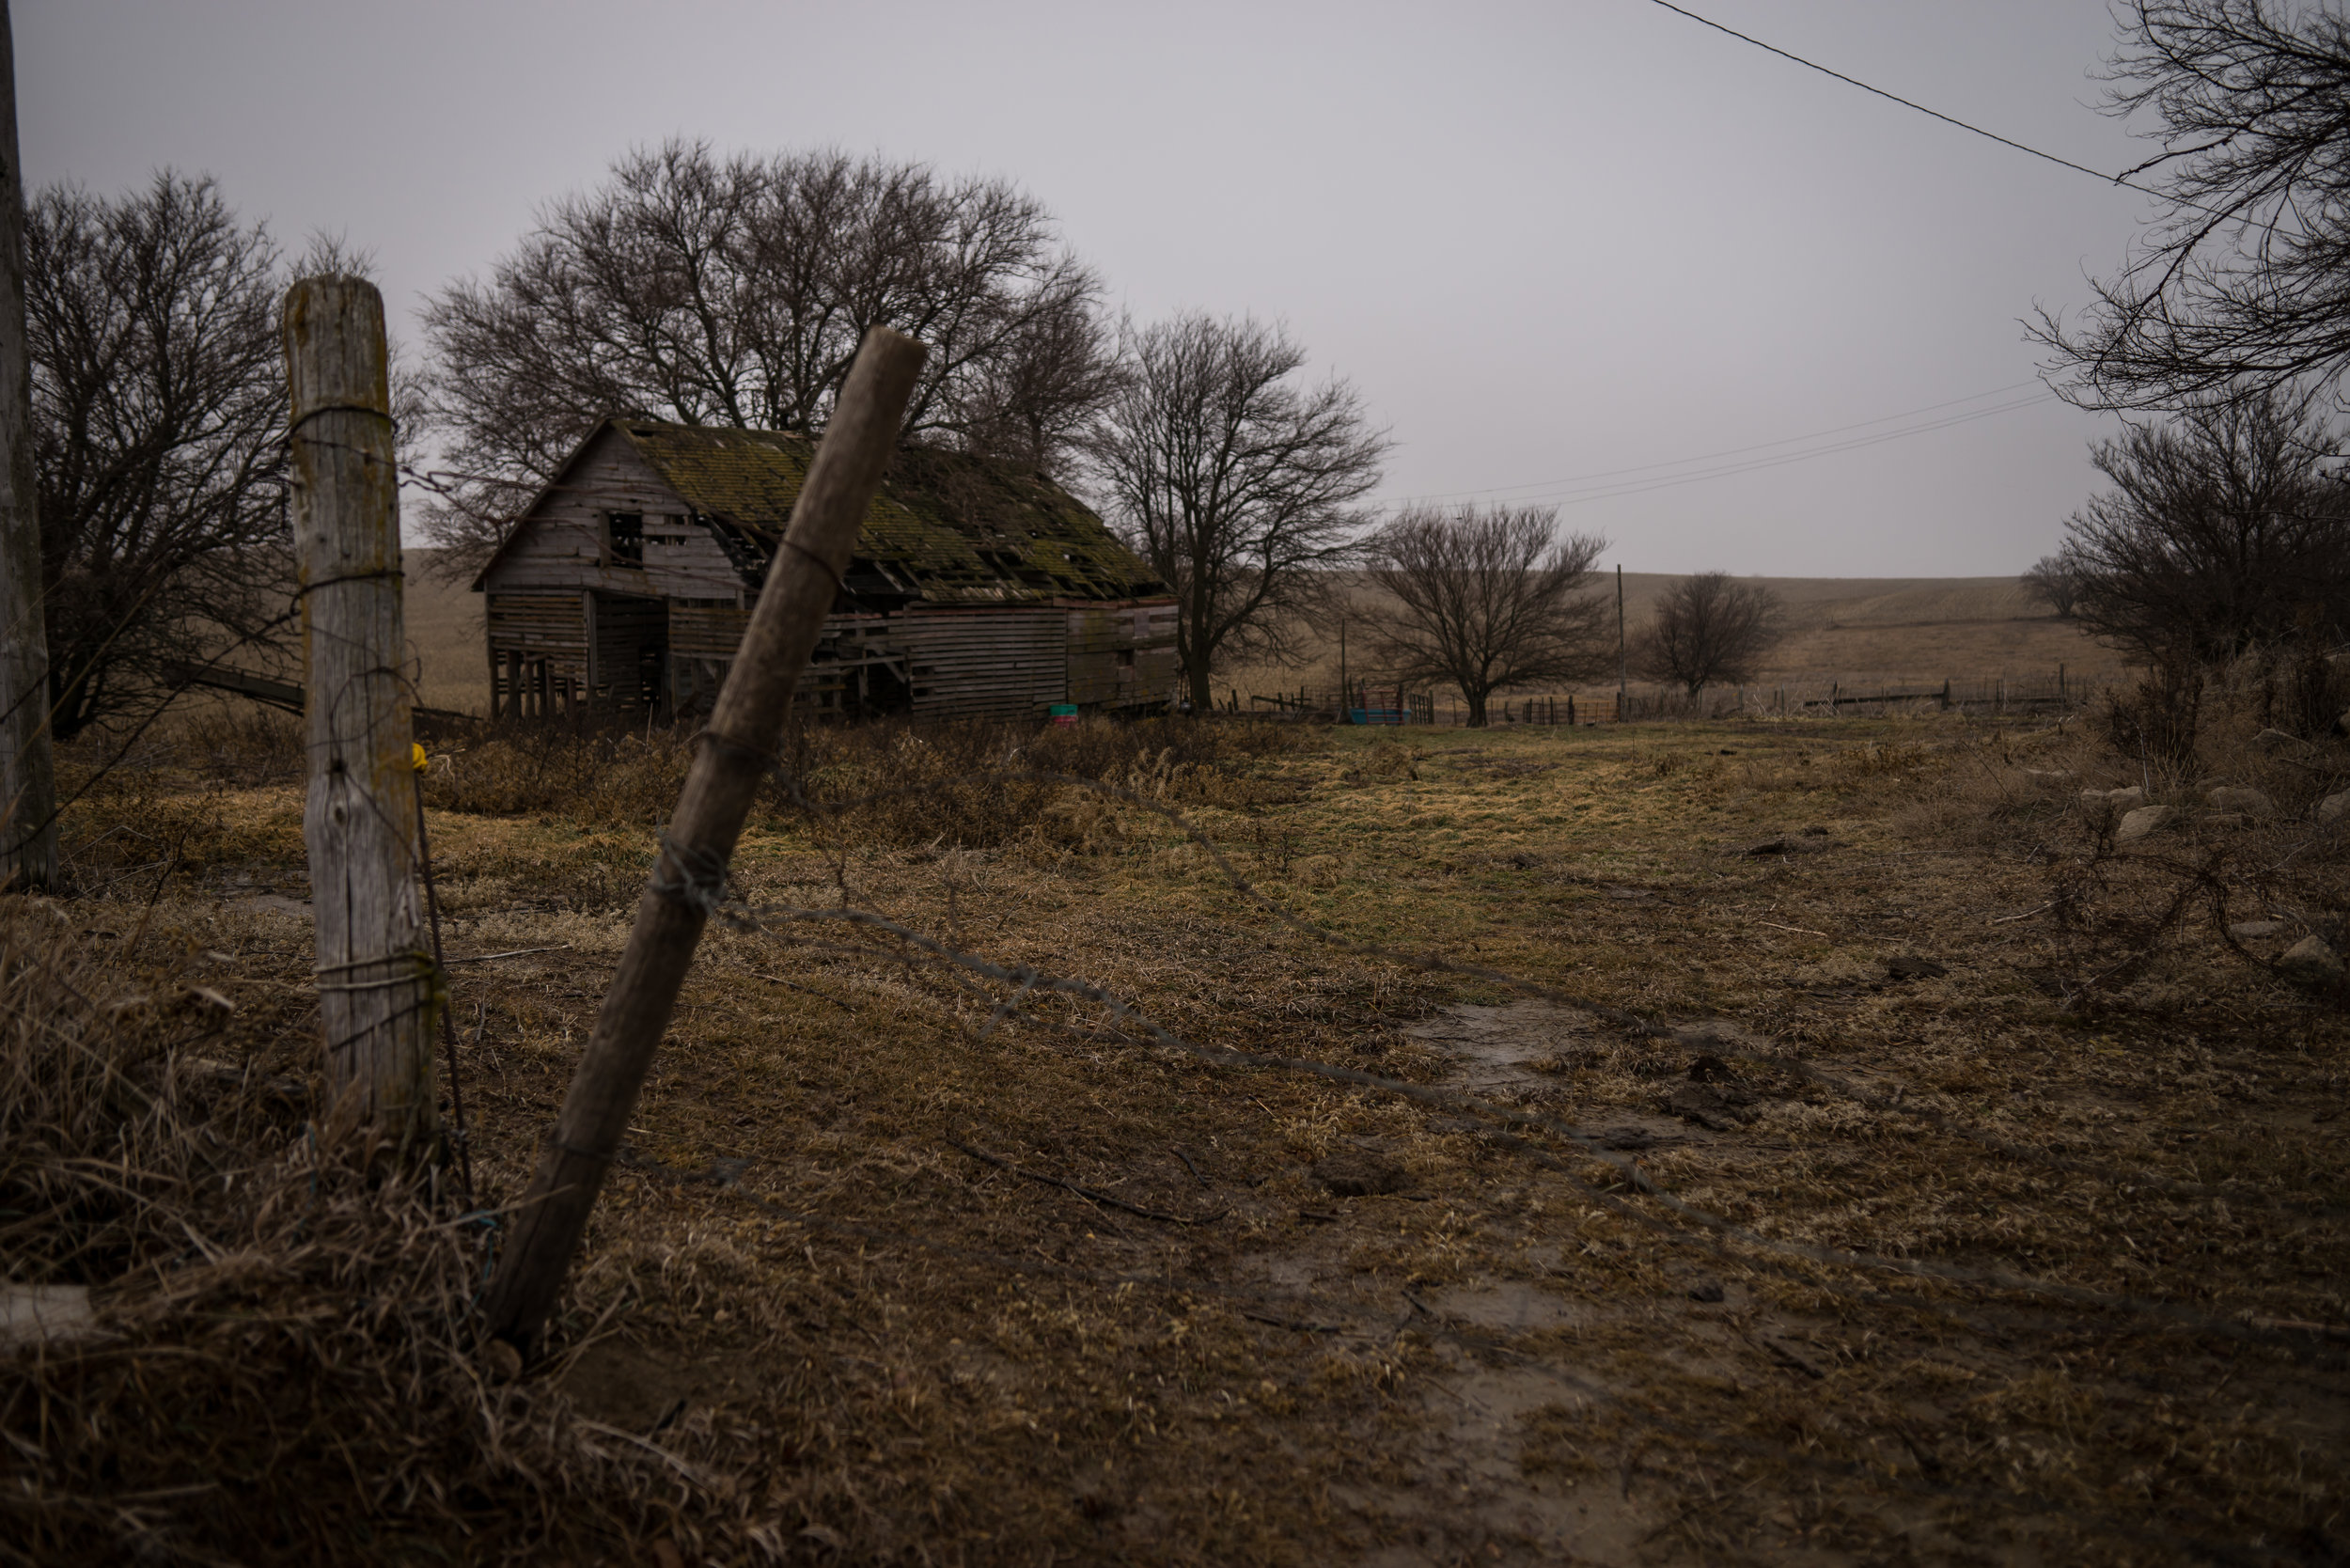 Abandoned house near the farm in Coleridge Nebraska